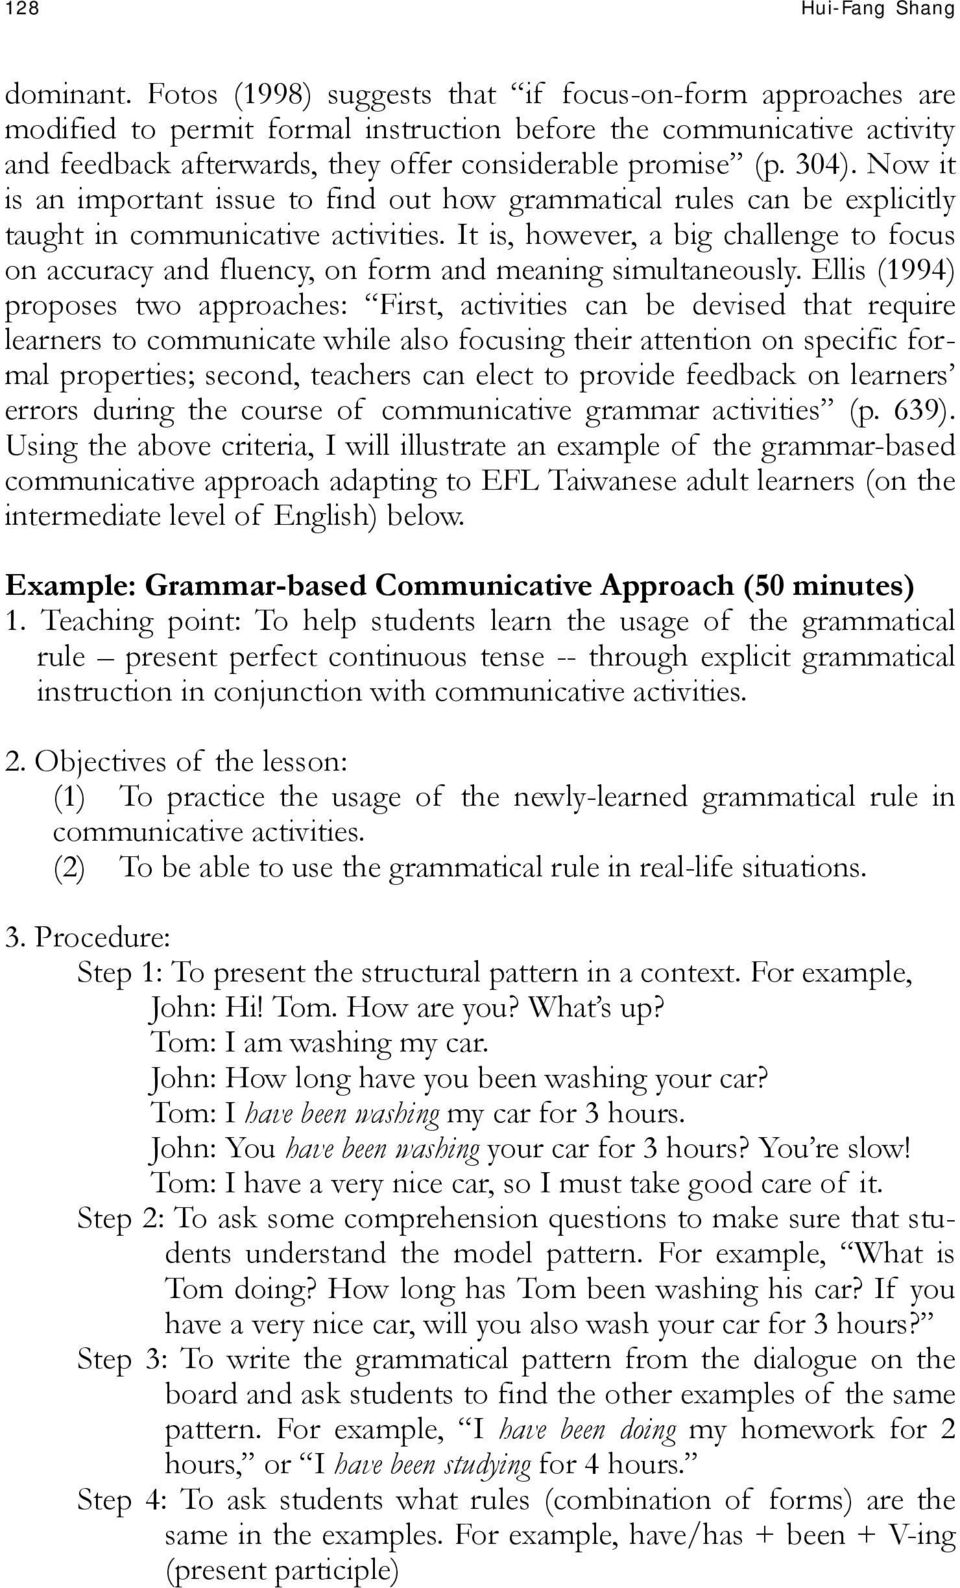 Now it is an important issue to find out how grammatical rules can be explicitly taught in communicative activities.